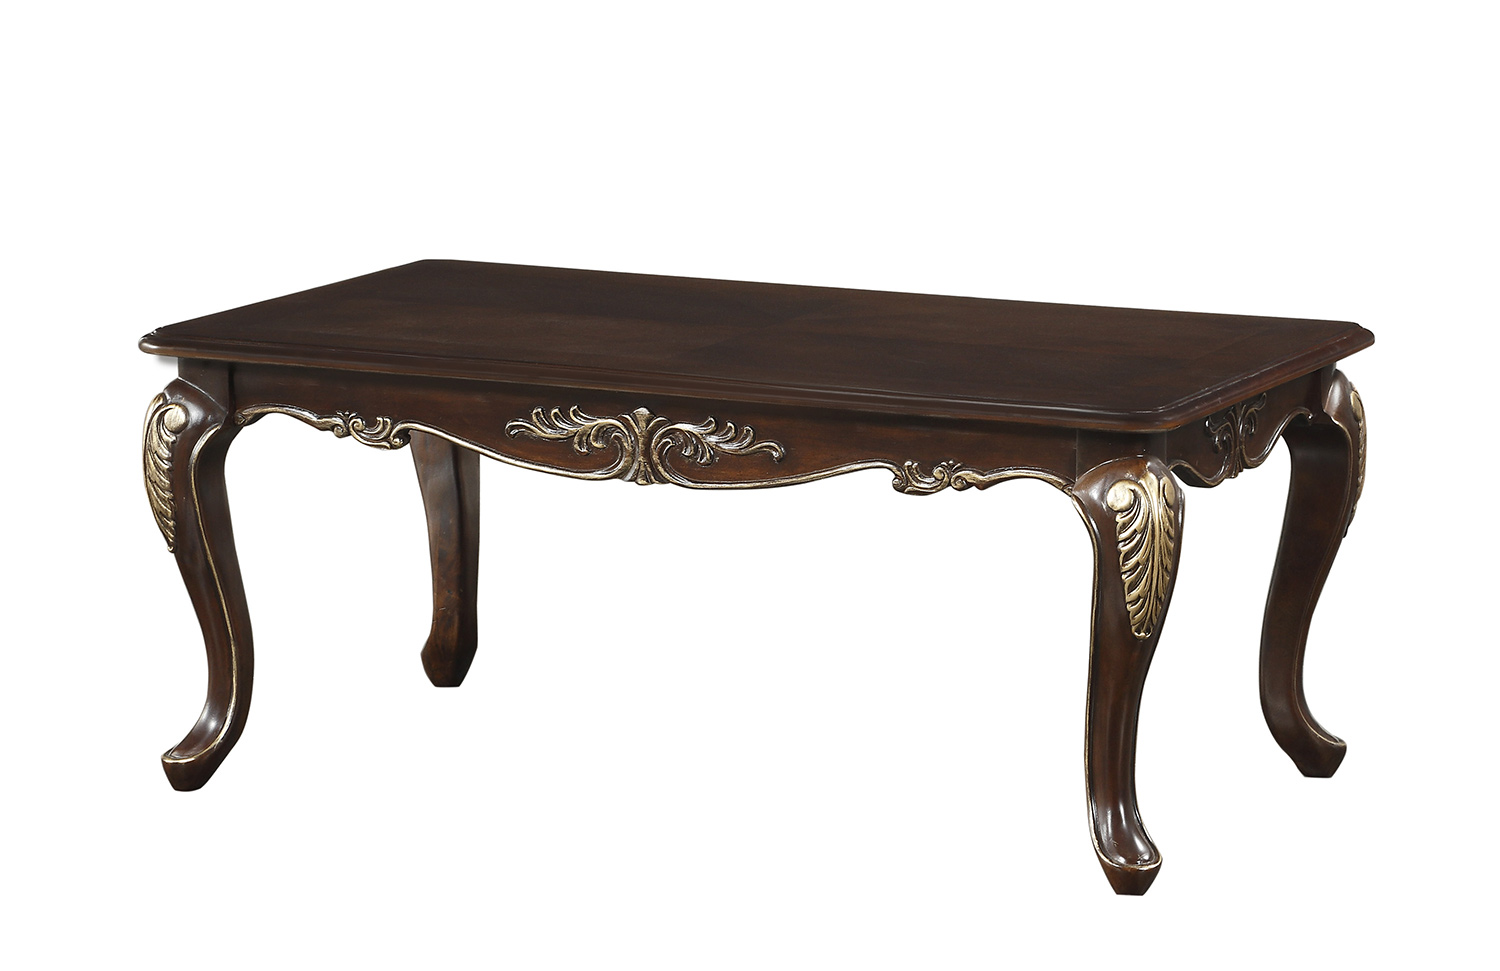 Homelegance Croydon Cocktail/Coffee Table - Rich Cherry